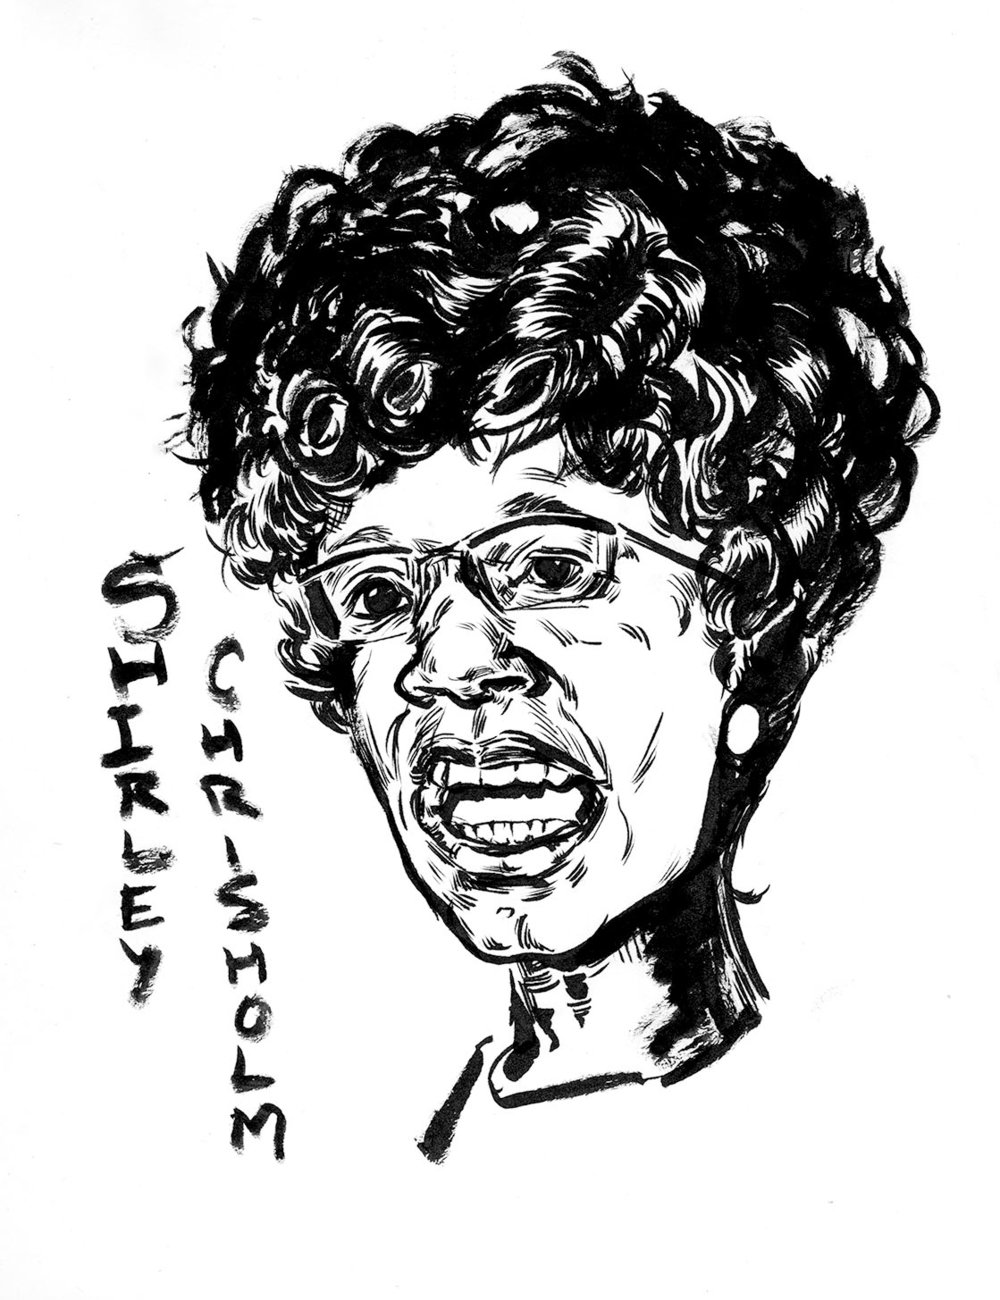 Shirley_Chrisholm_sketch.jpg